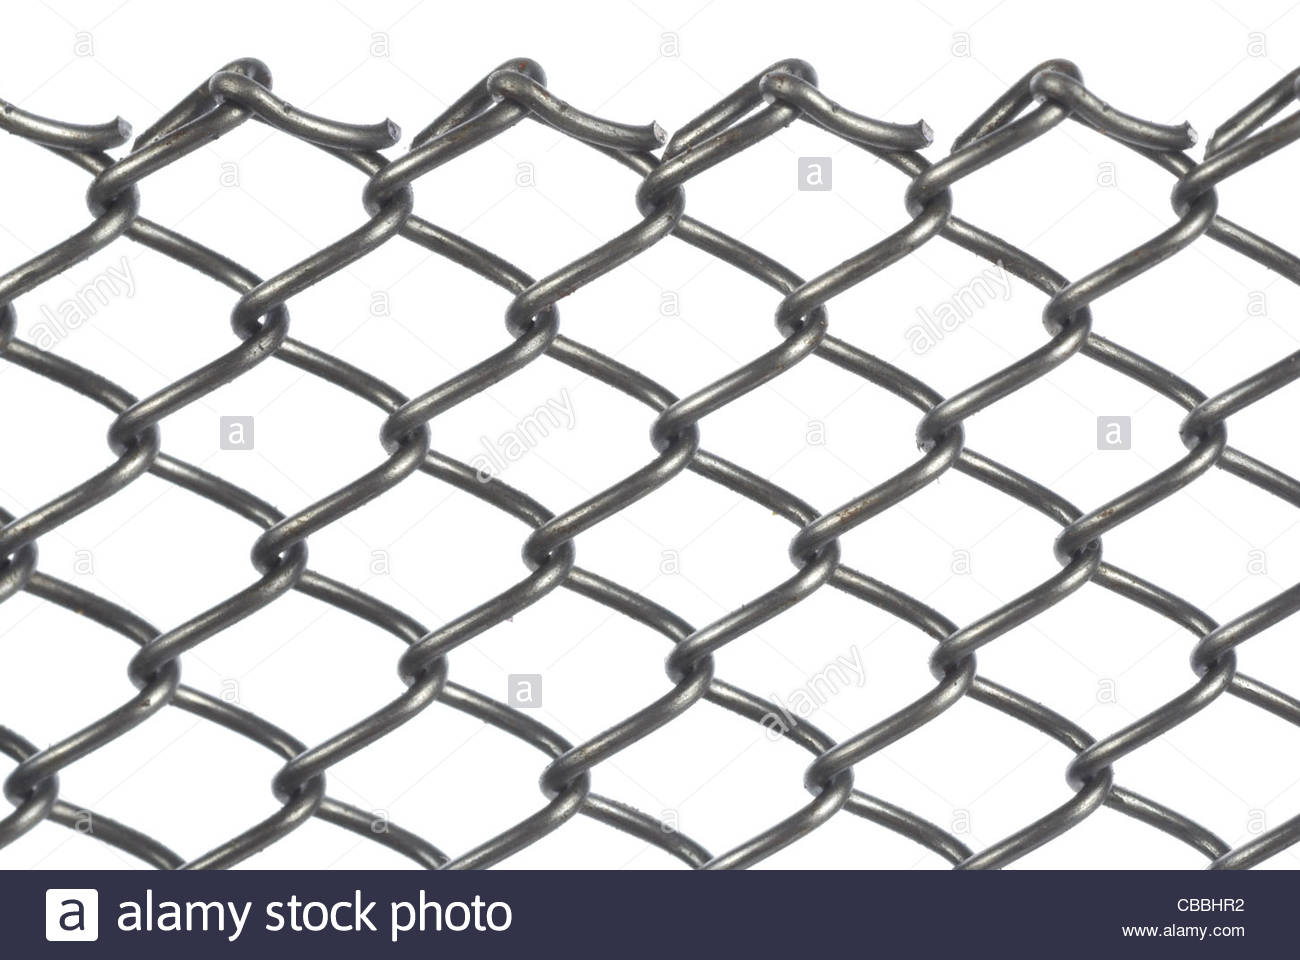 1300x960 Abstract Background Border Chain Design Drawing Element Frame